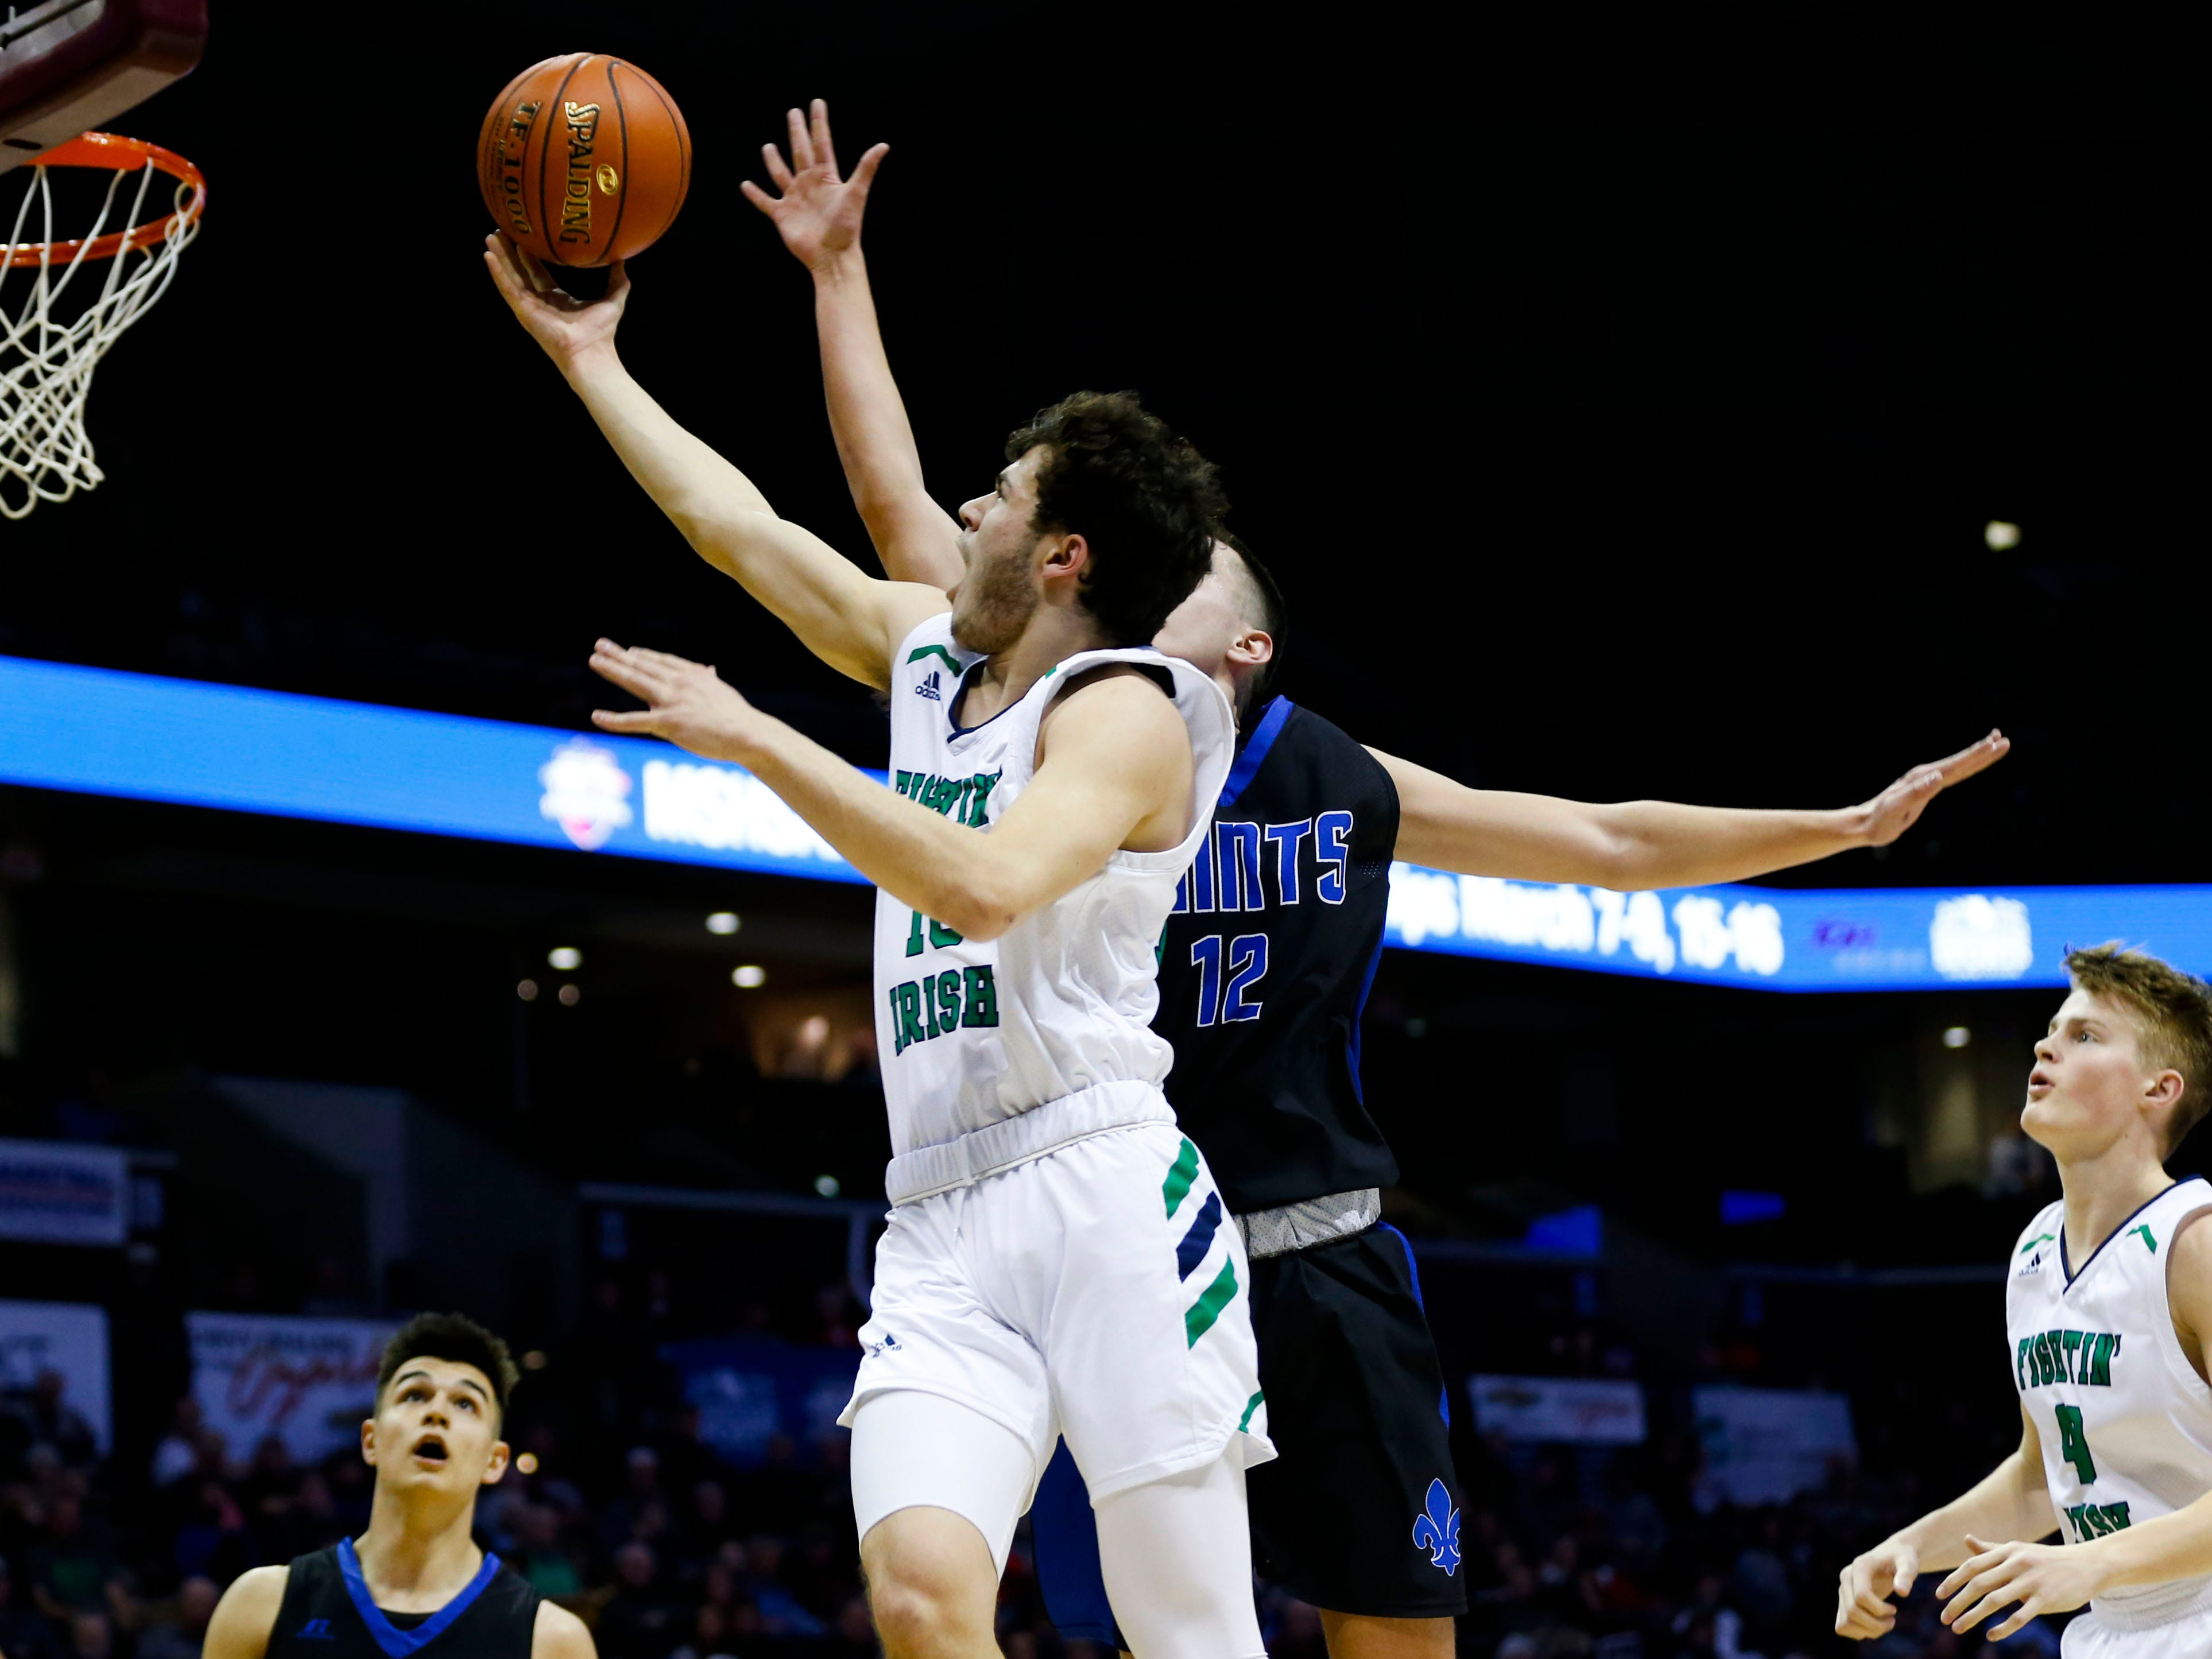 The Springfield Catholic Fightin' Irish take on the St. Paul Lutheran Saints in the semifinal round of Class 3 state basketball at JQH Arena on Thursday, March 7, 2019.